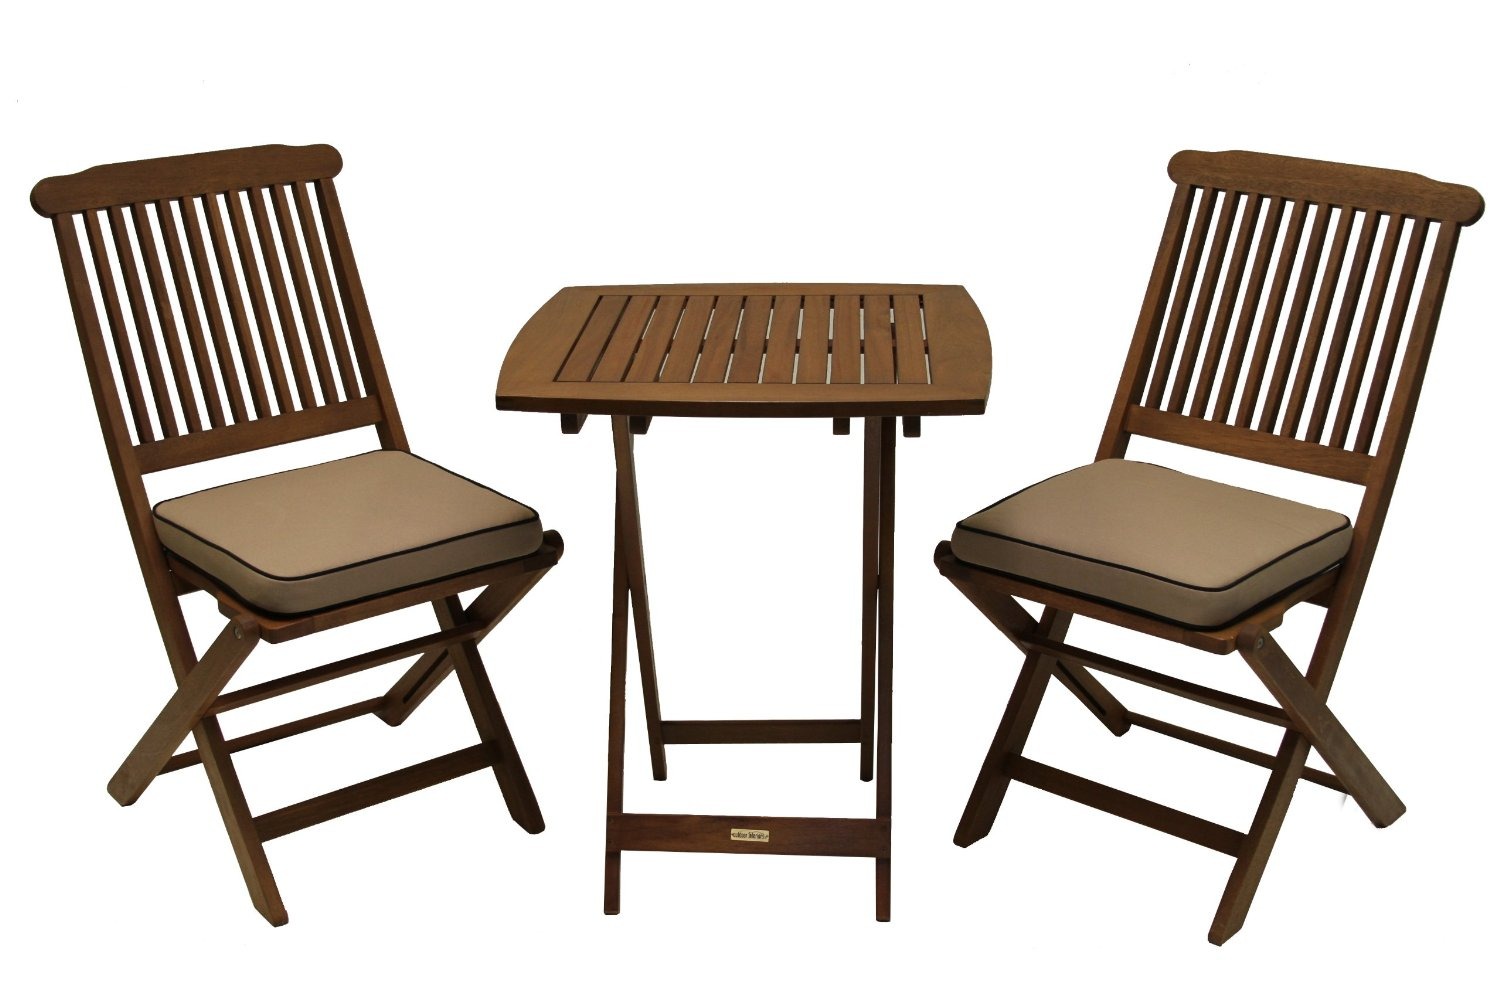 Outdoor eucalyptus 3 piece square bistro outdoor furniture for Small patio furniture sets